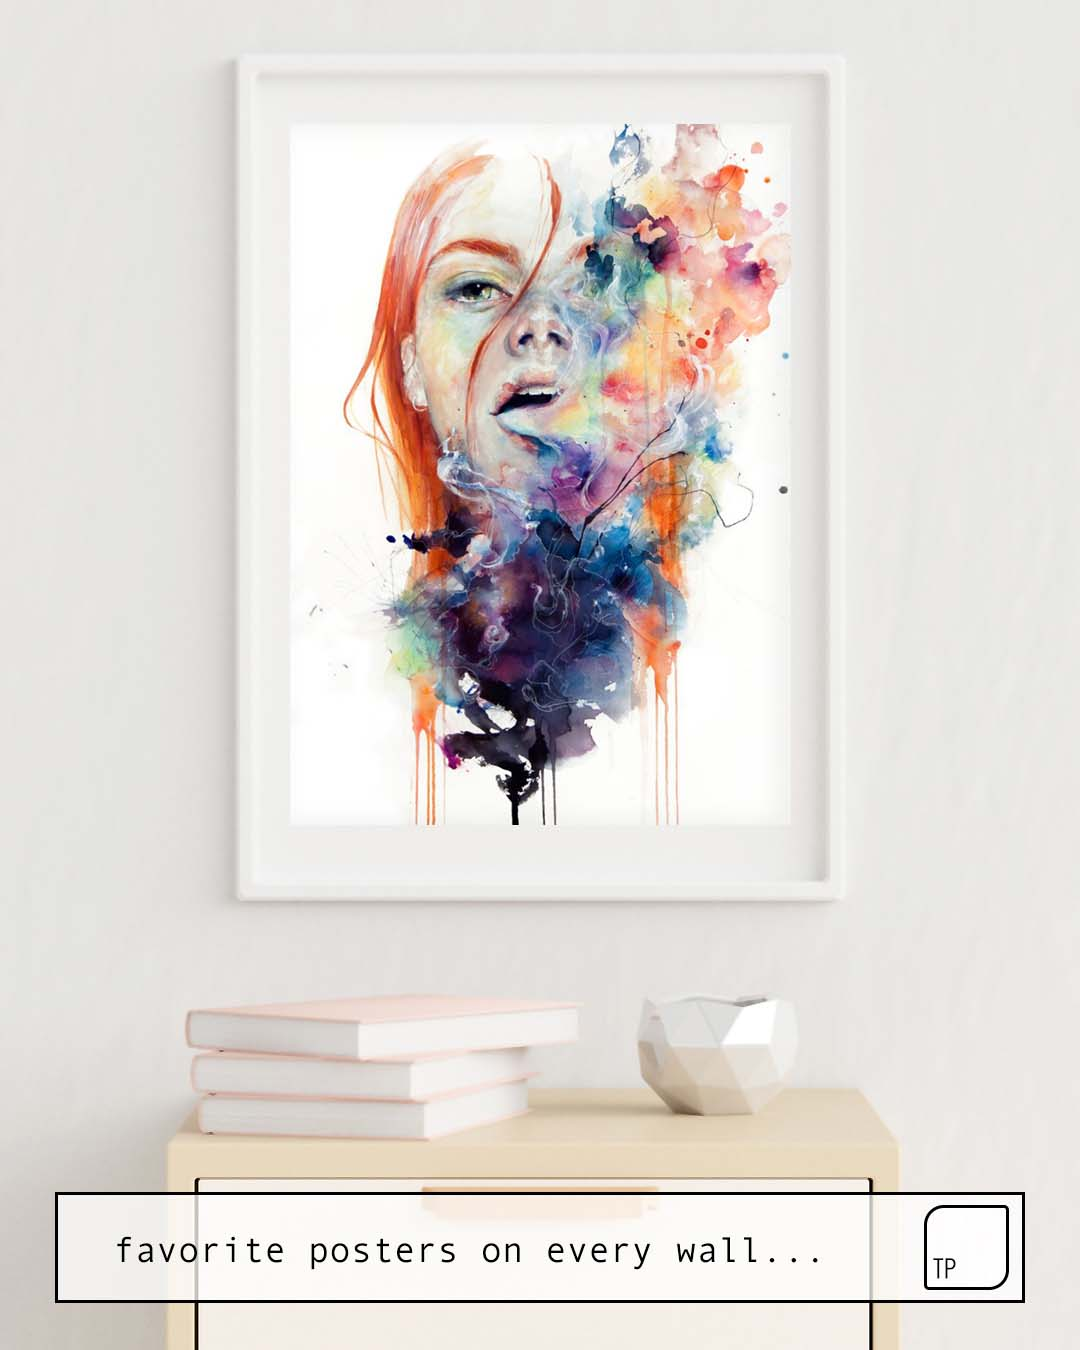 The photo shows an example of furnishing with the motif THIS THING CALLED ART IS REALLY DANGEROUS by Agnes Cecile as mural